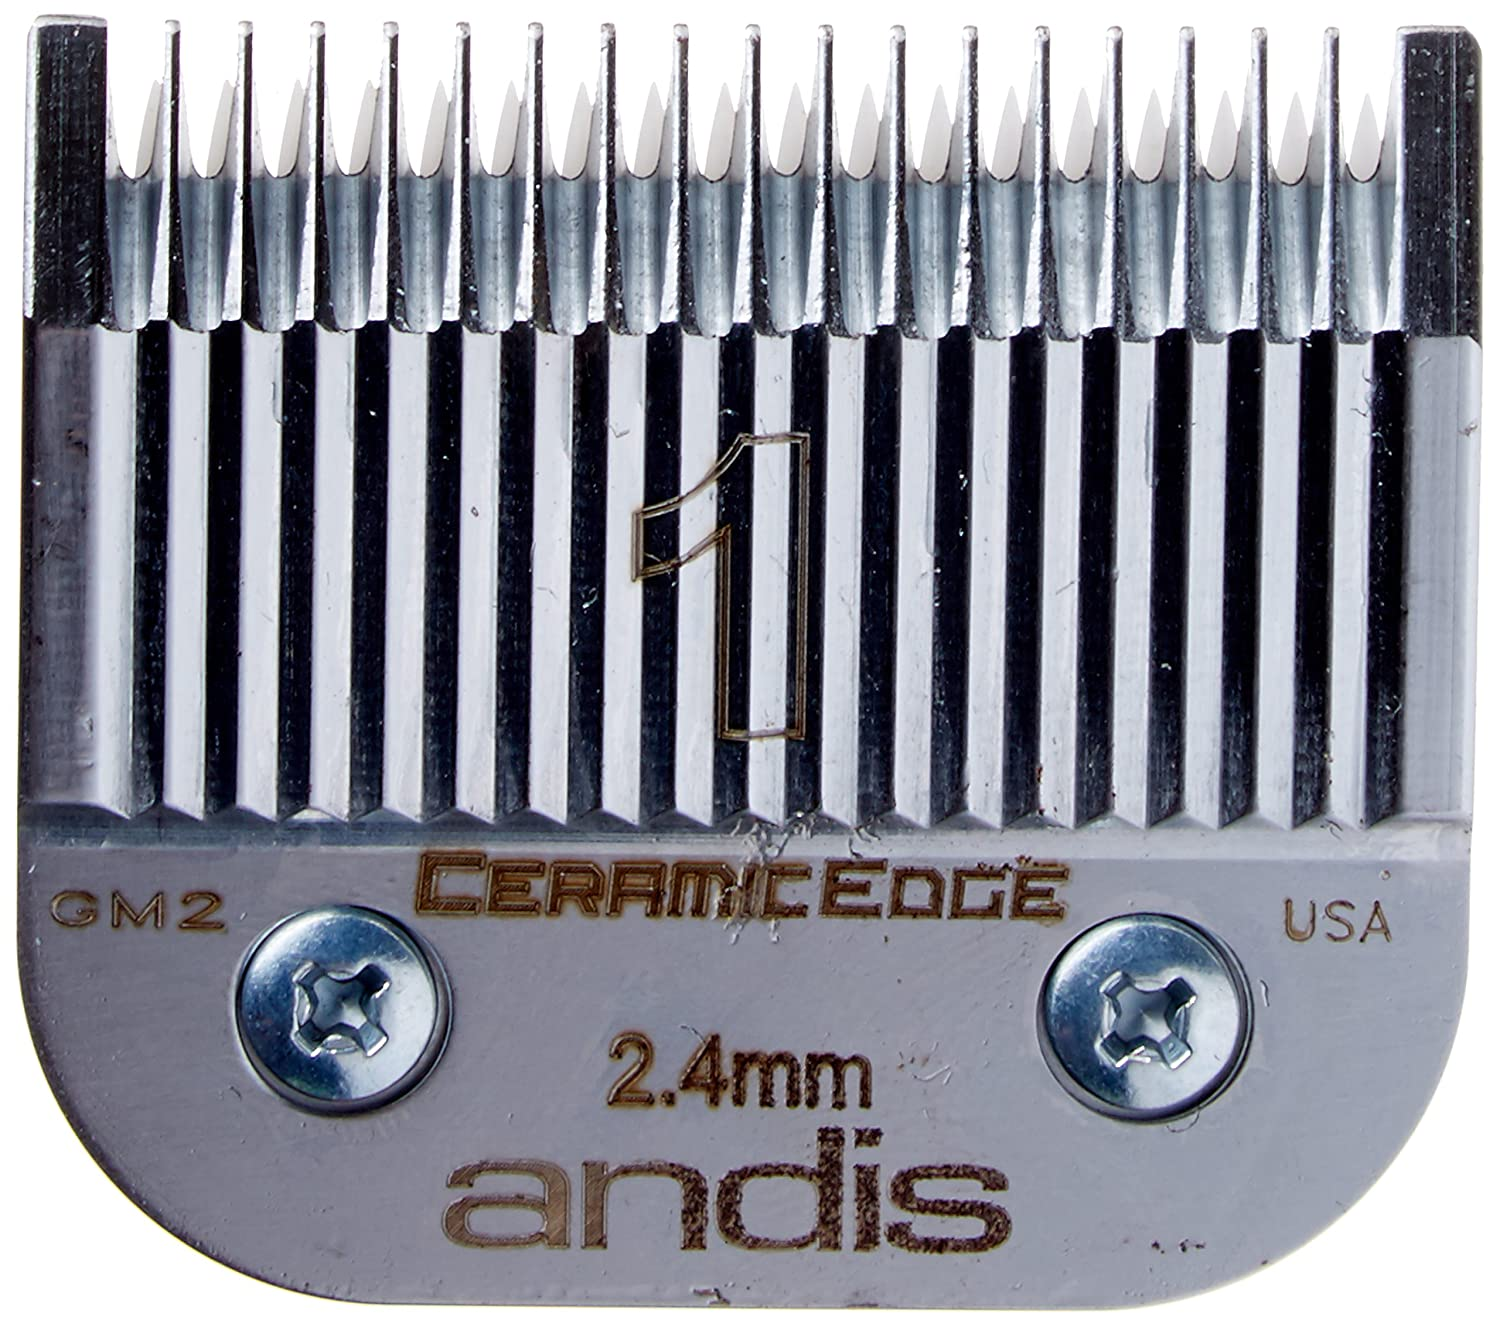 Andis pro ceramic edge one set blade, 1 Count, Silver AN-64465